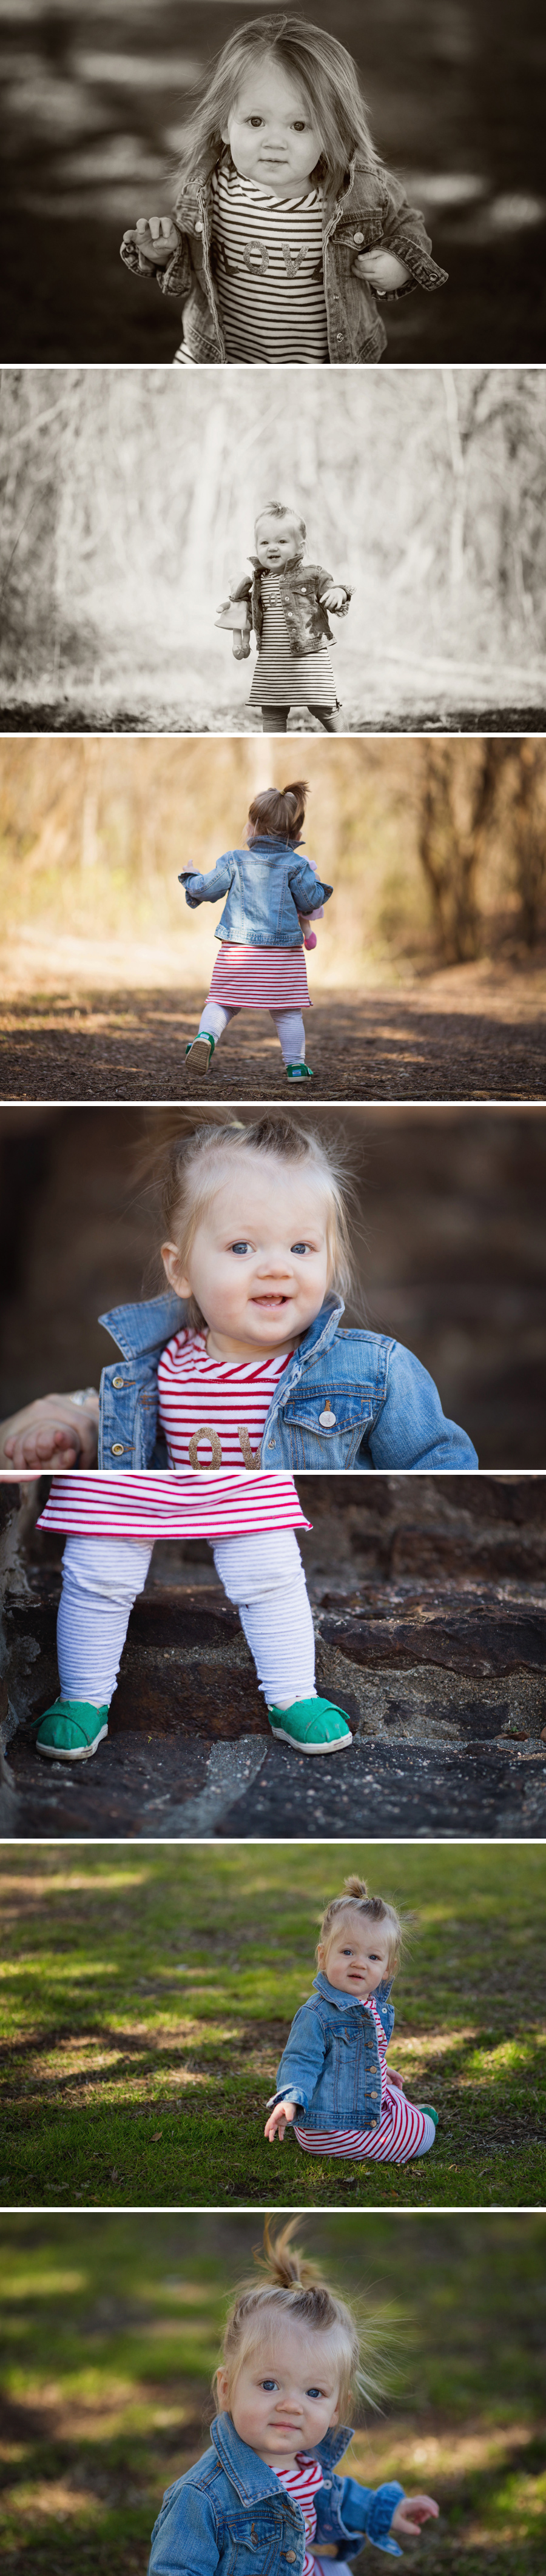 Dallas-Baby-PhotographerG005